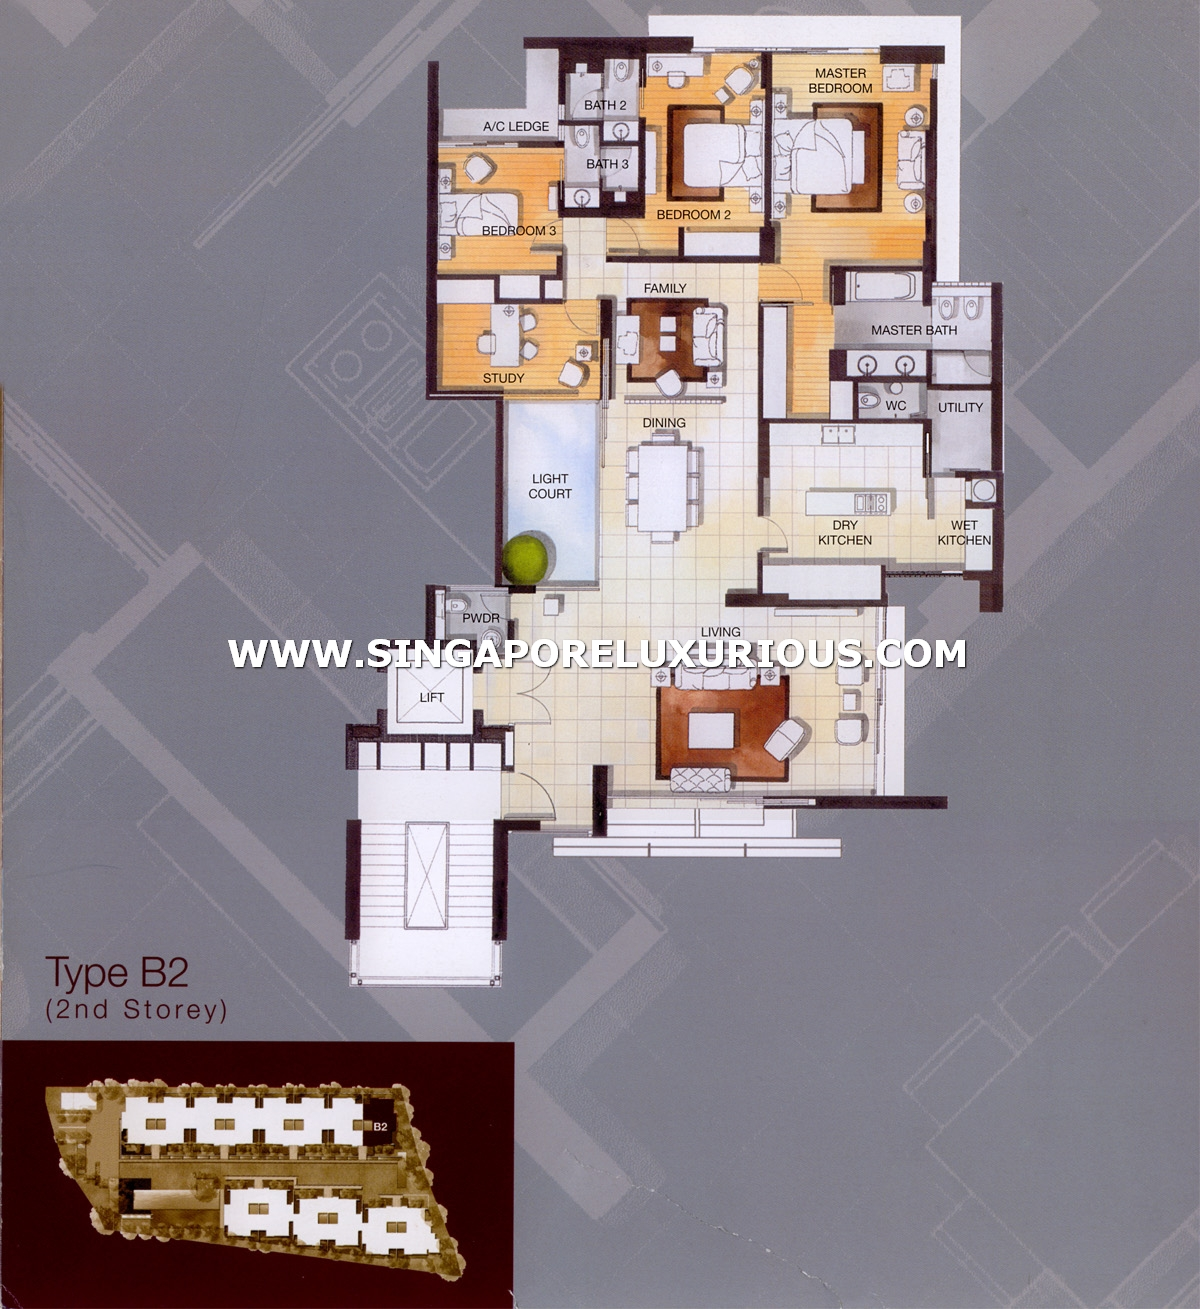 The Ladyhill Site Amp Floor Plan Singapore Luxurious Property